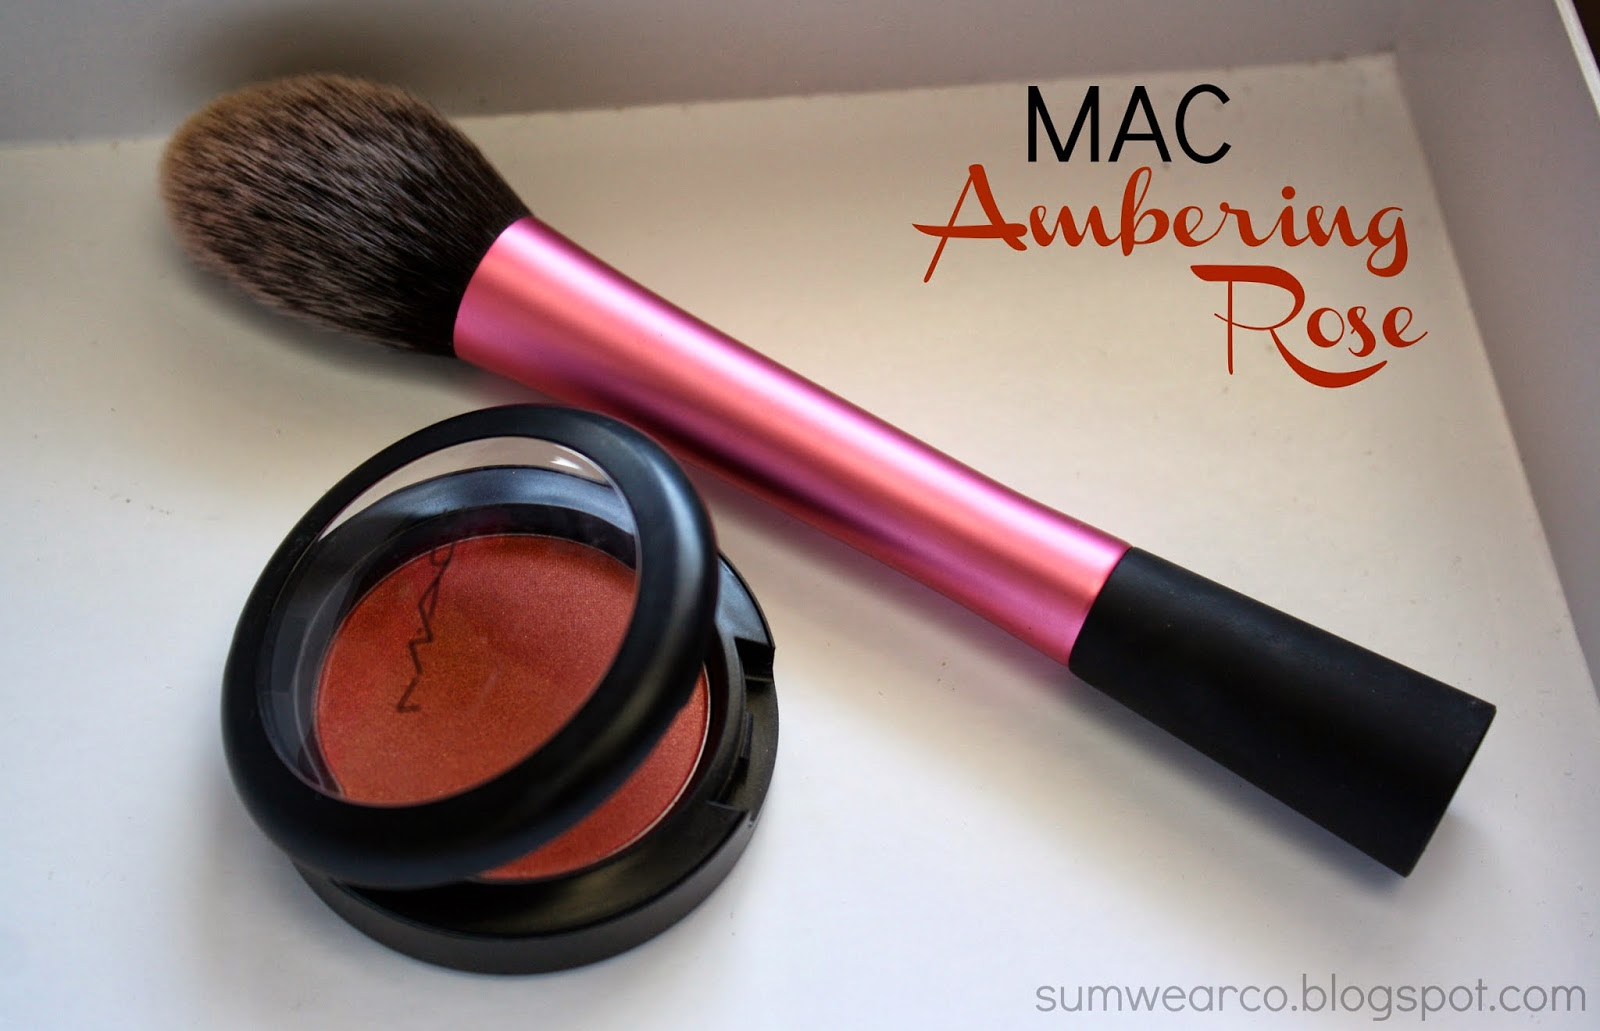 Dissecting Beauty with SumWear Co.: MAC Powder Blush in Ambering Rose